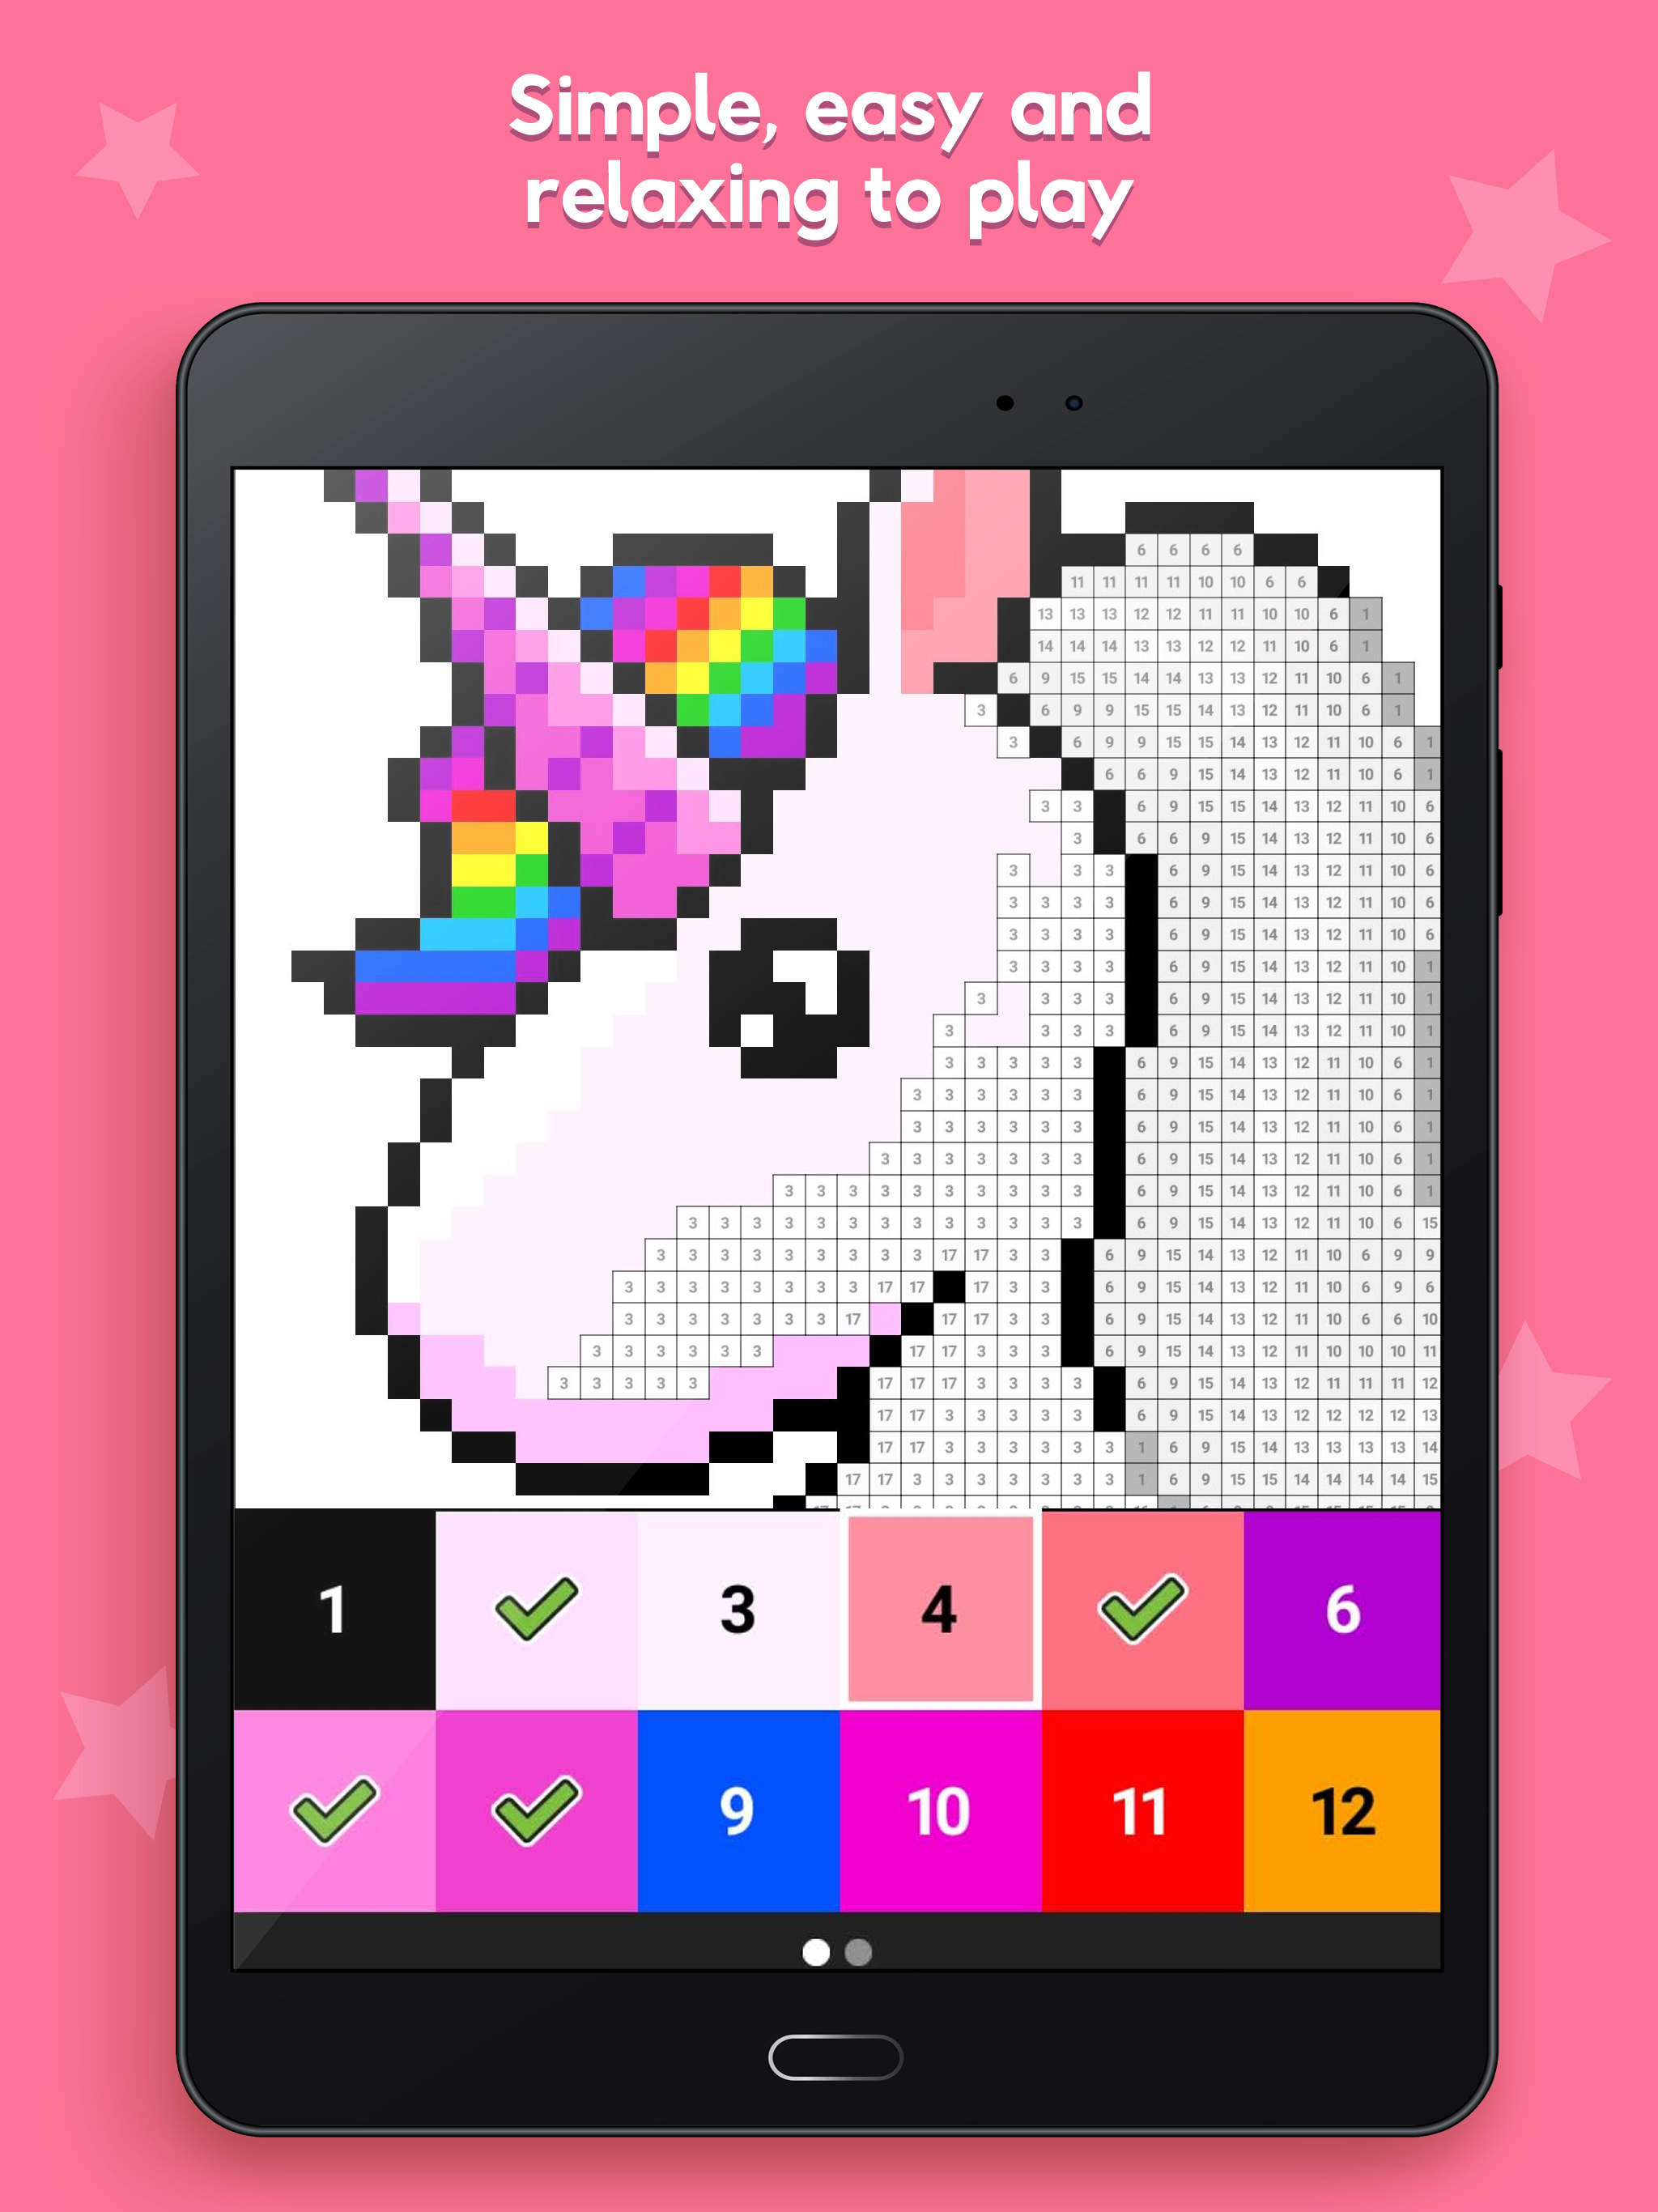 Partially completed pixel pattern of a unicorn with rainbow mane, on a tablet screen. Words at the top read 'Simple, easy and relaxing to play'